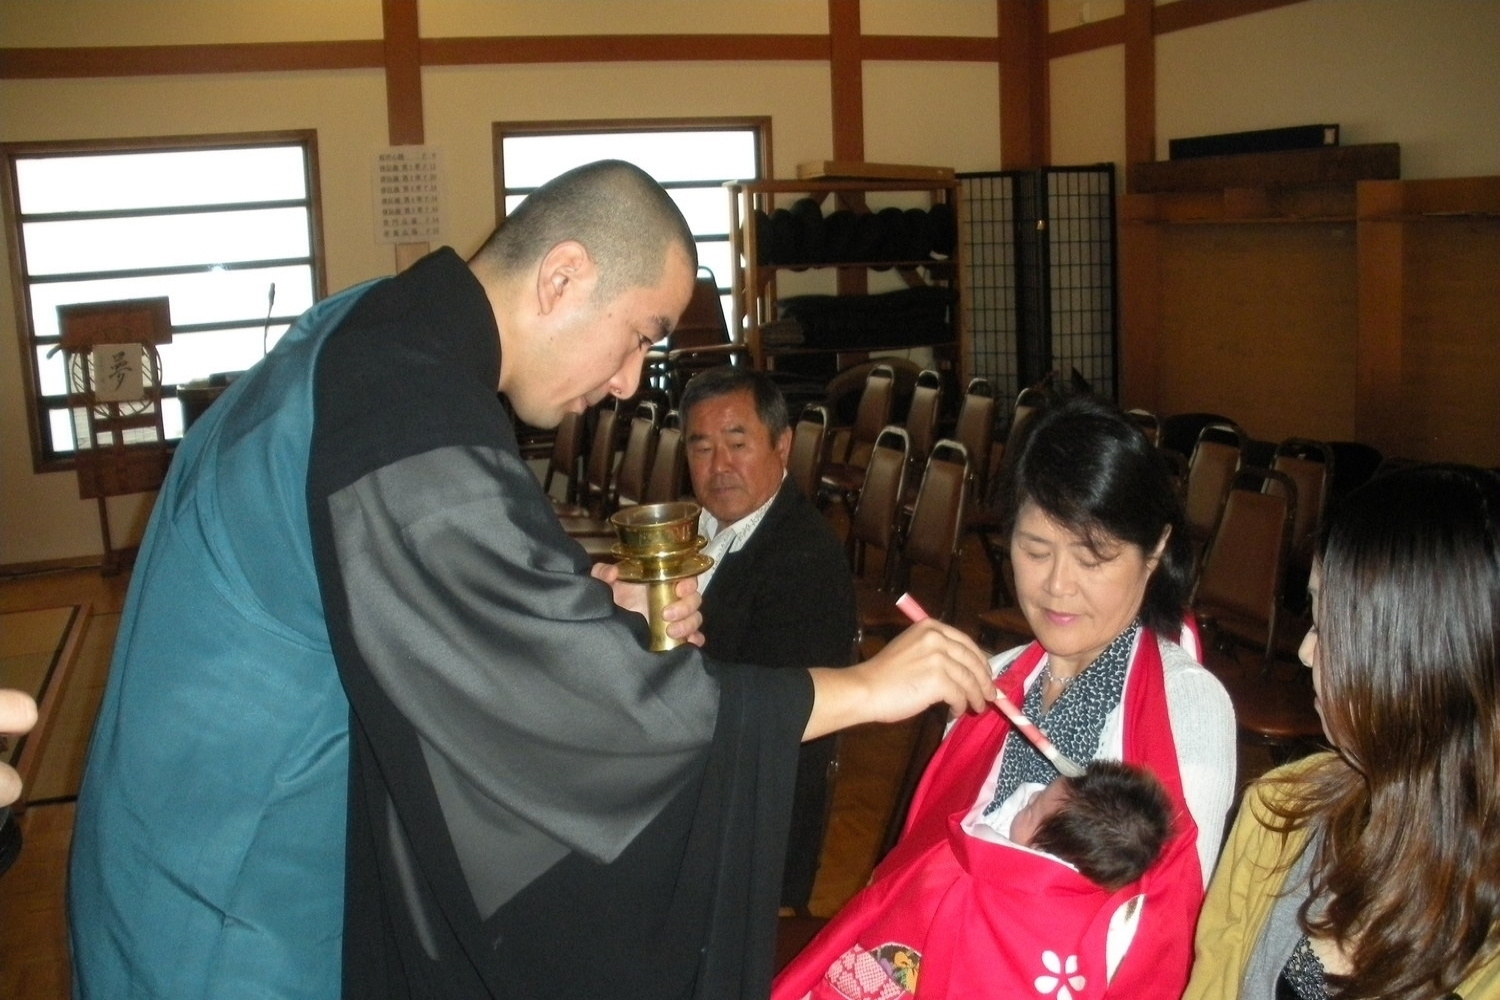 Weddings, Hatsumairi (Baby Blessing), Funerals, Memorial, etc. Please contact Sokoji for further information.